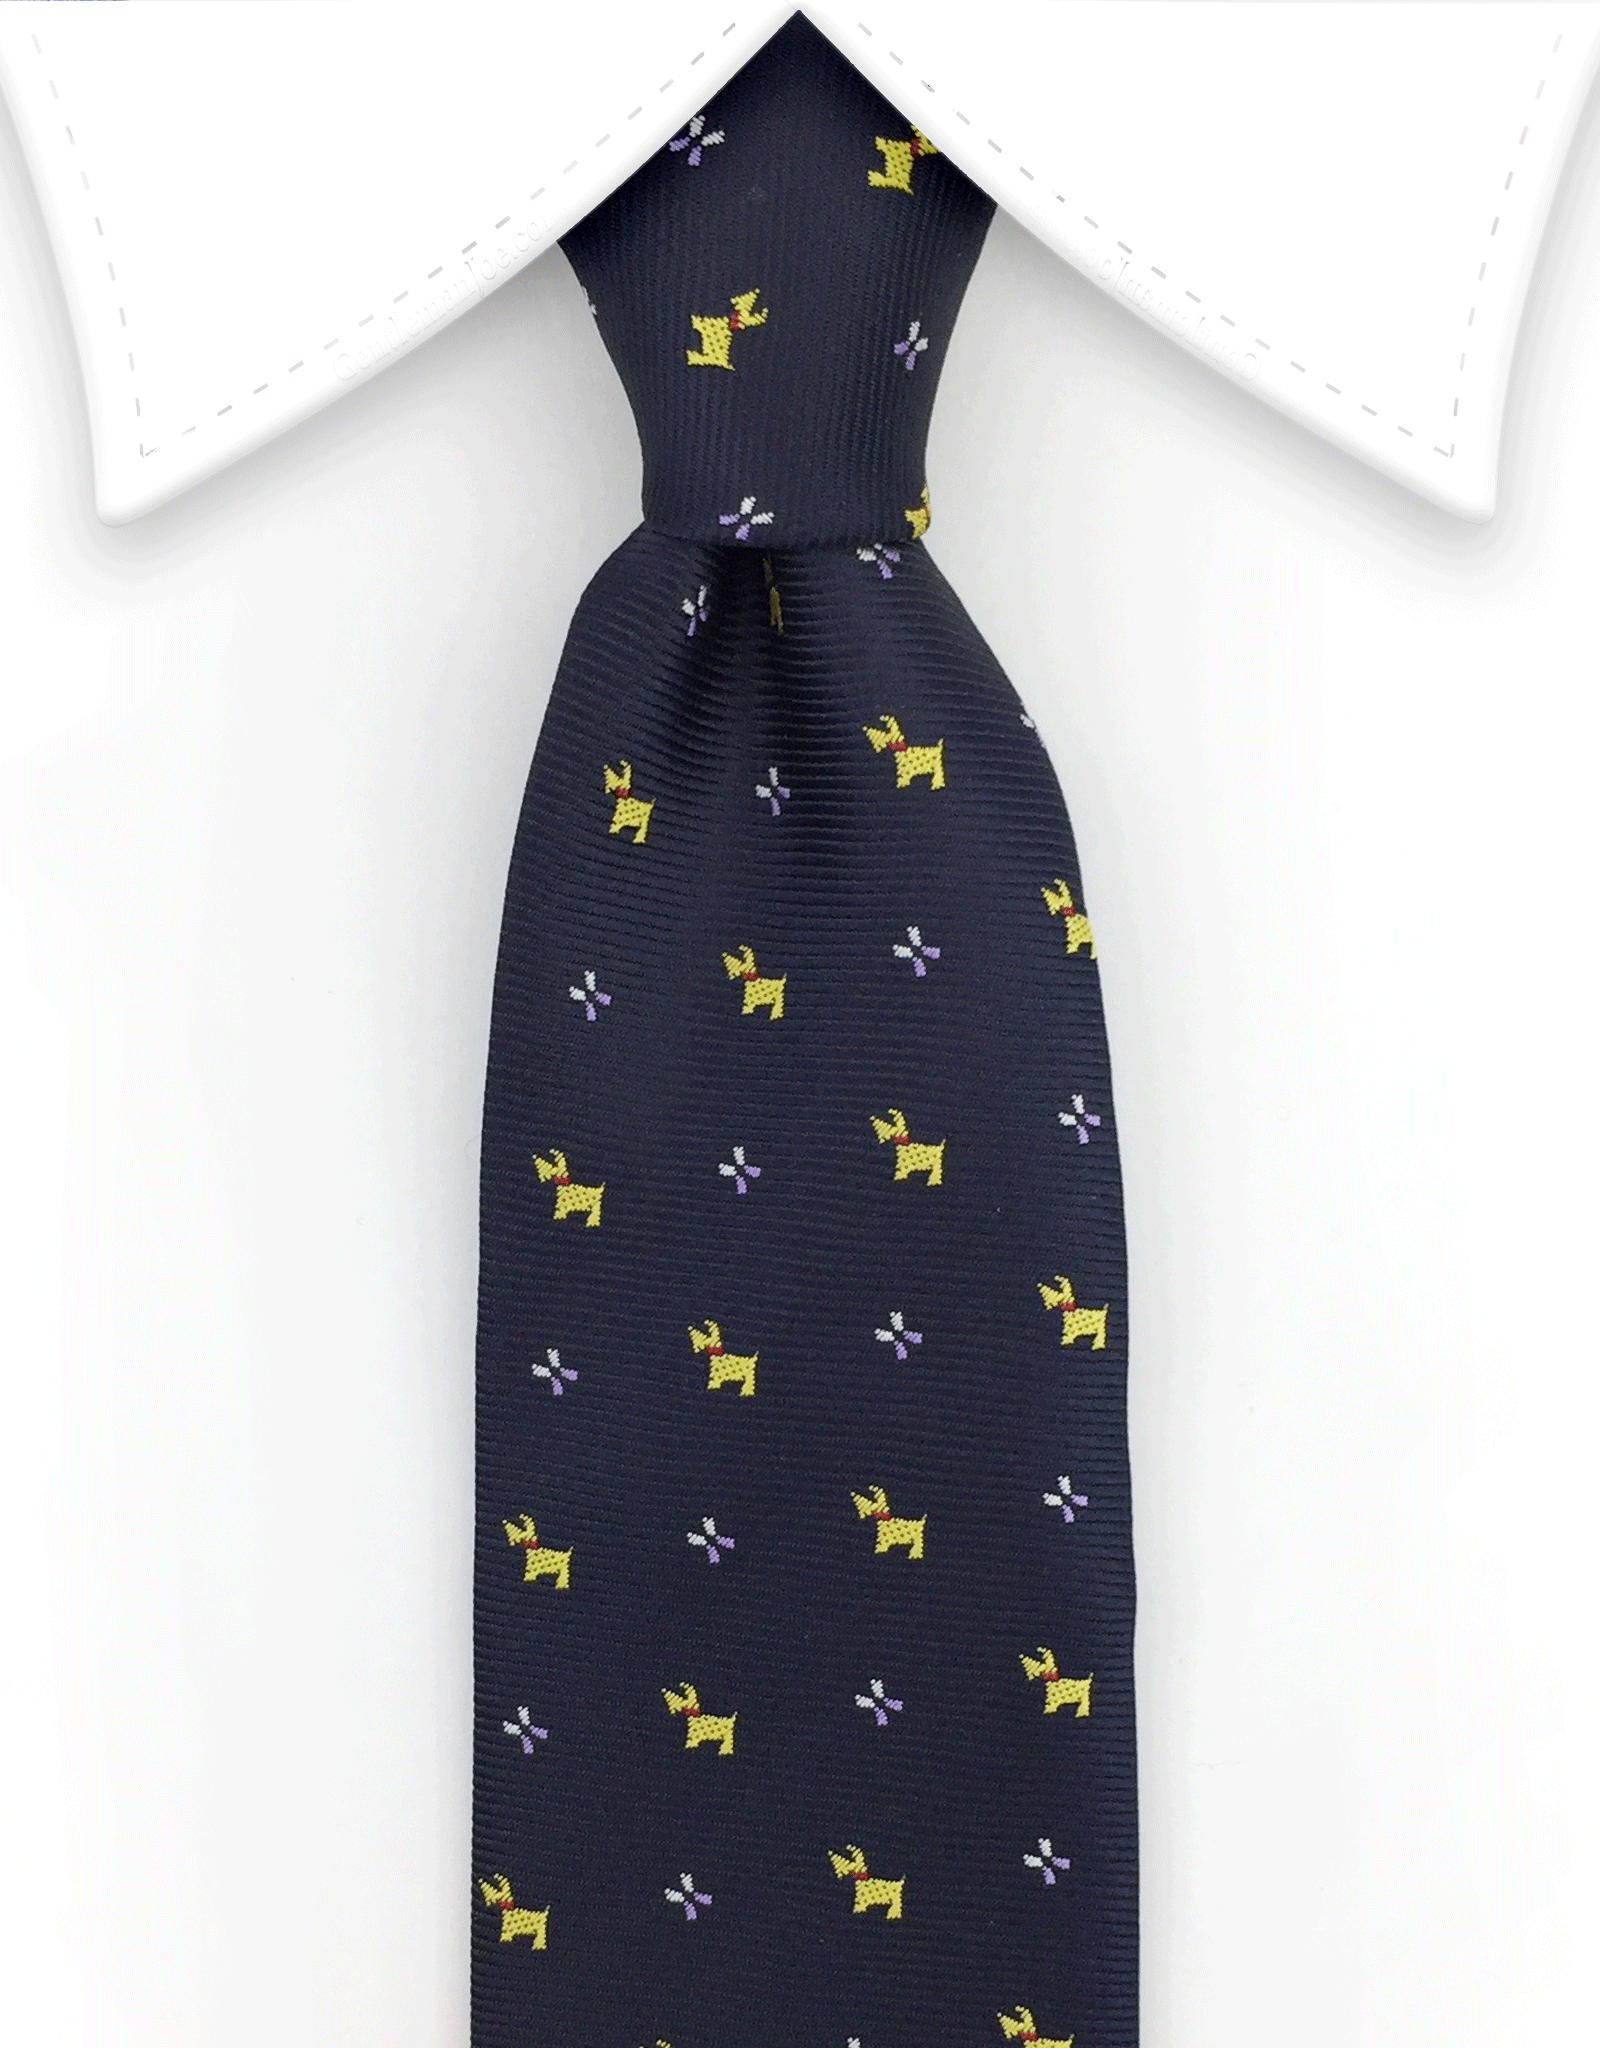 Navy Blue Scottish Terrier Dog Necktie